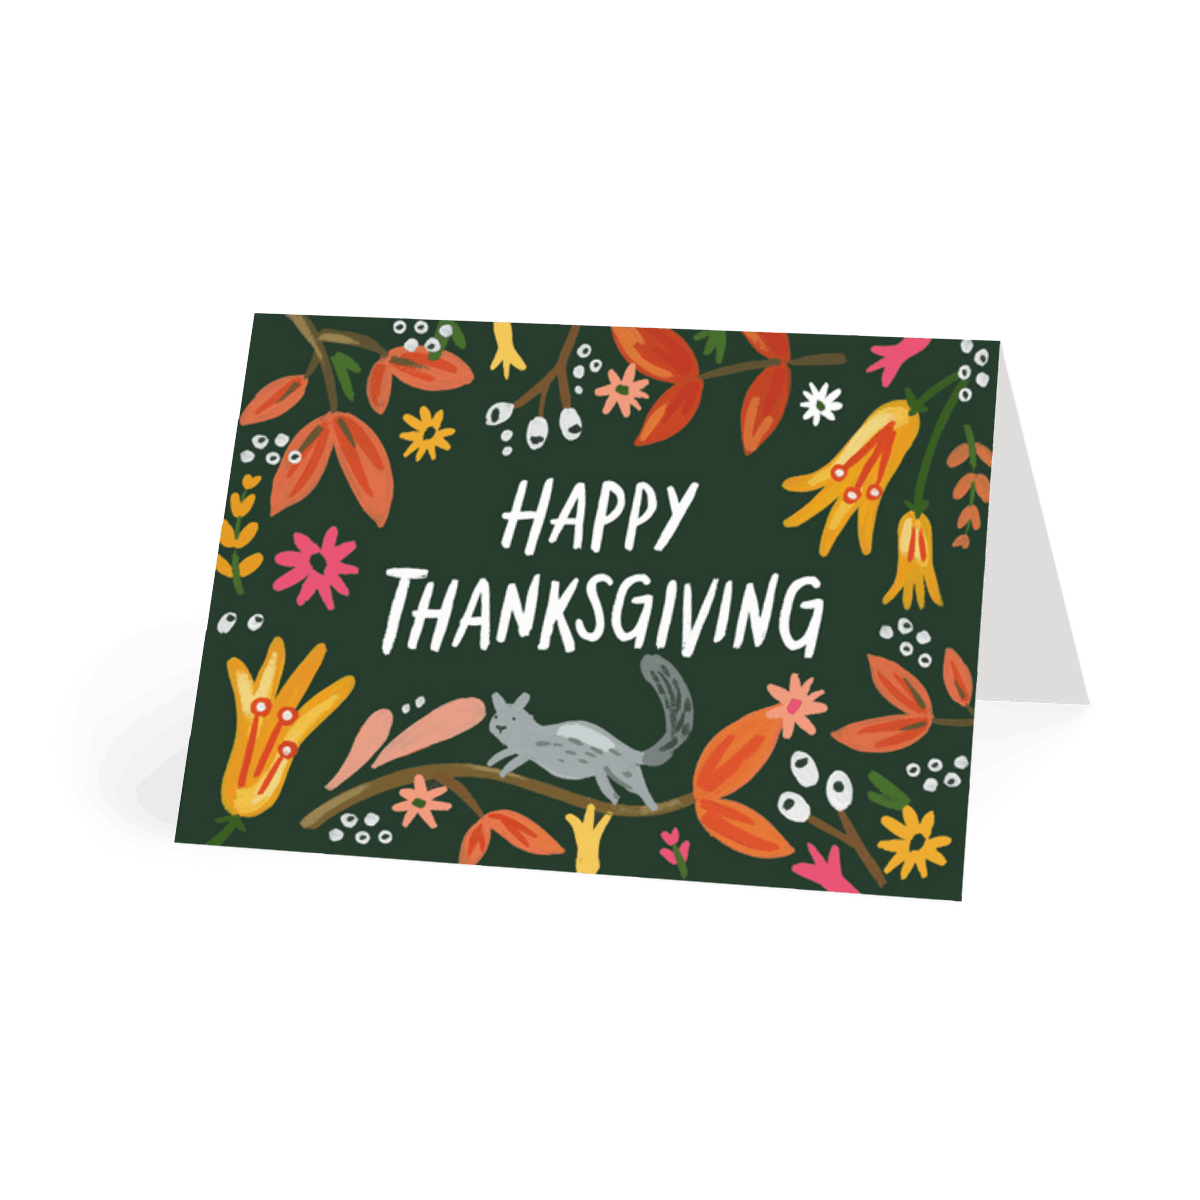 Https%3a%2f%2fwww.papier.com%2fproduct image%2f95062%2f14%2fhappy thanksgiving 23782 front 1572352796.png?ixlib=rb 1.1